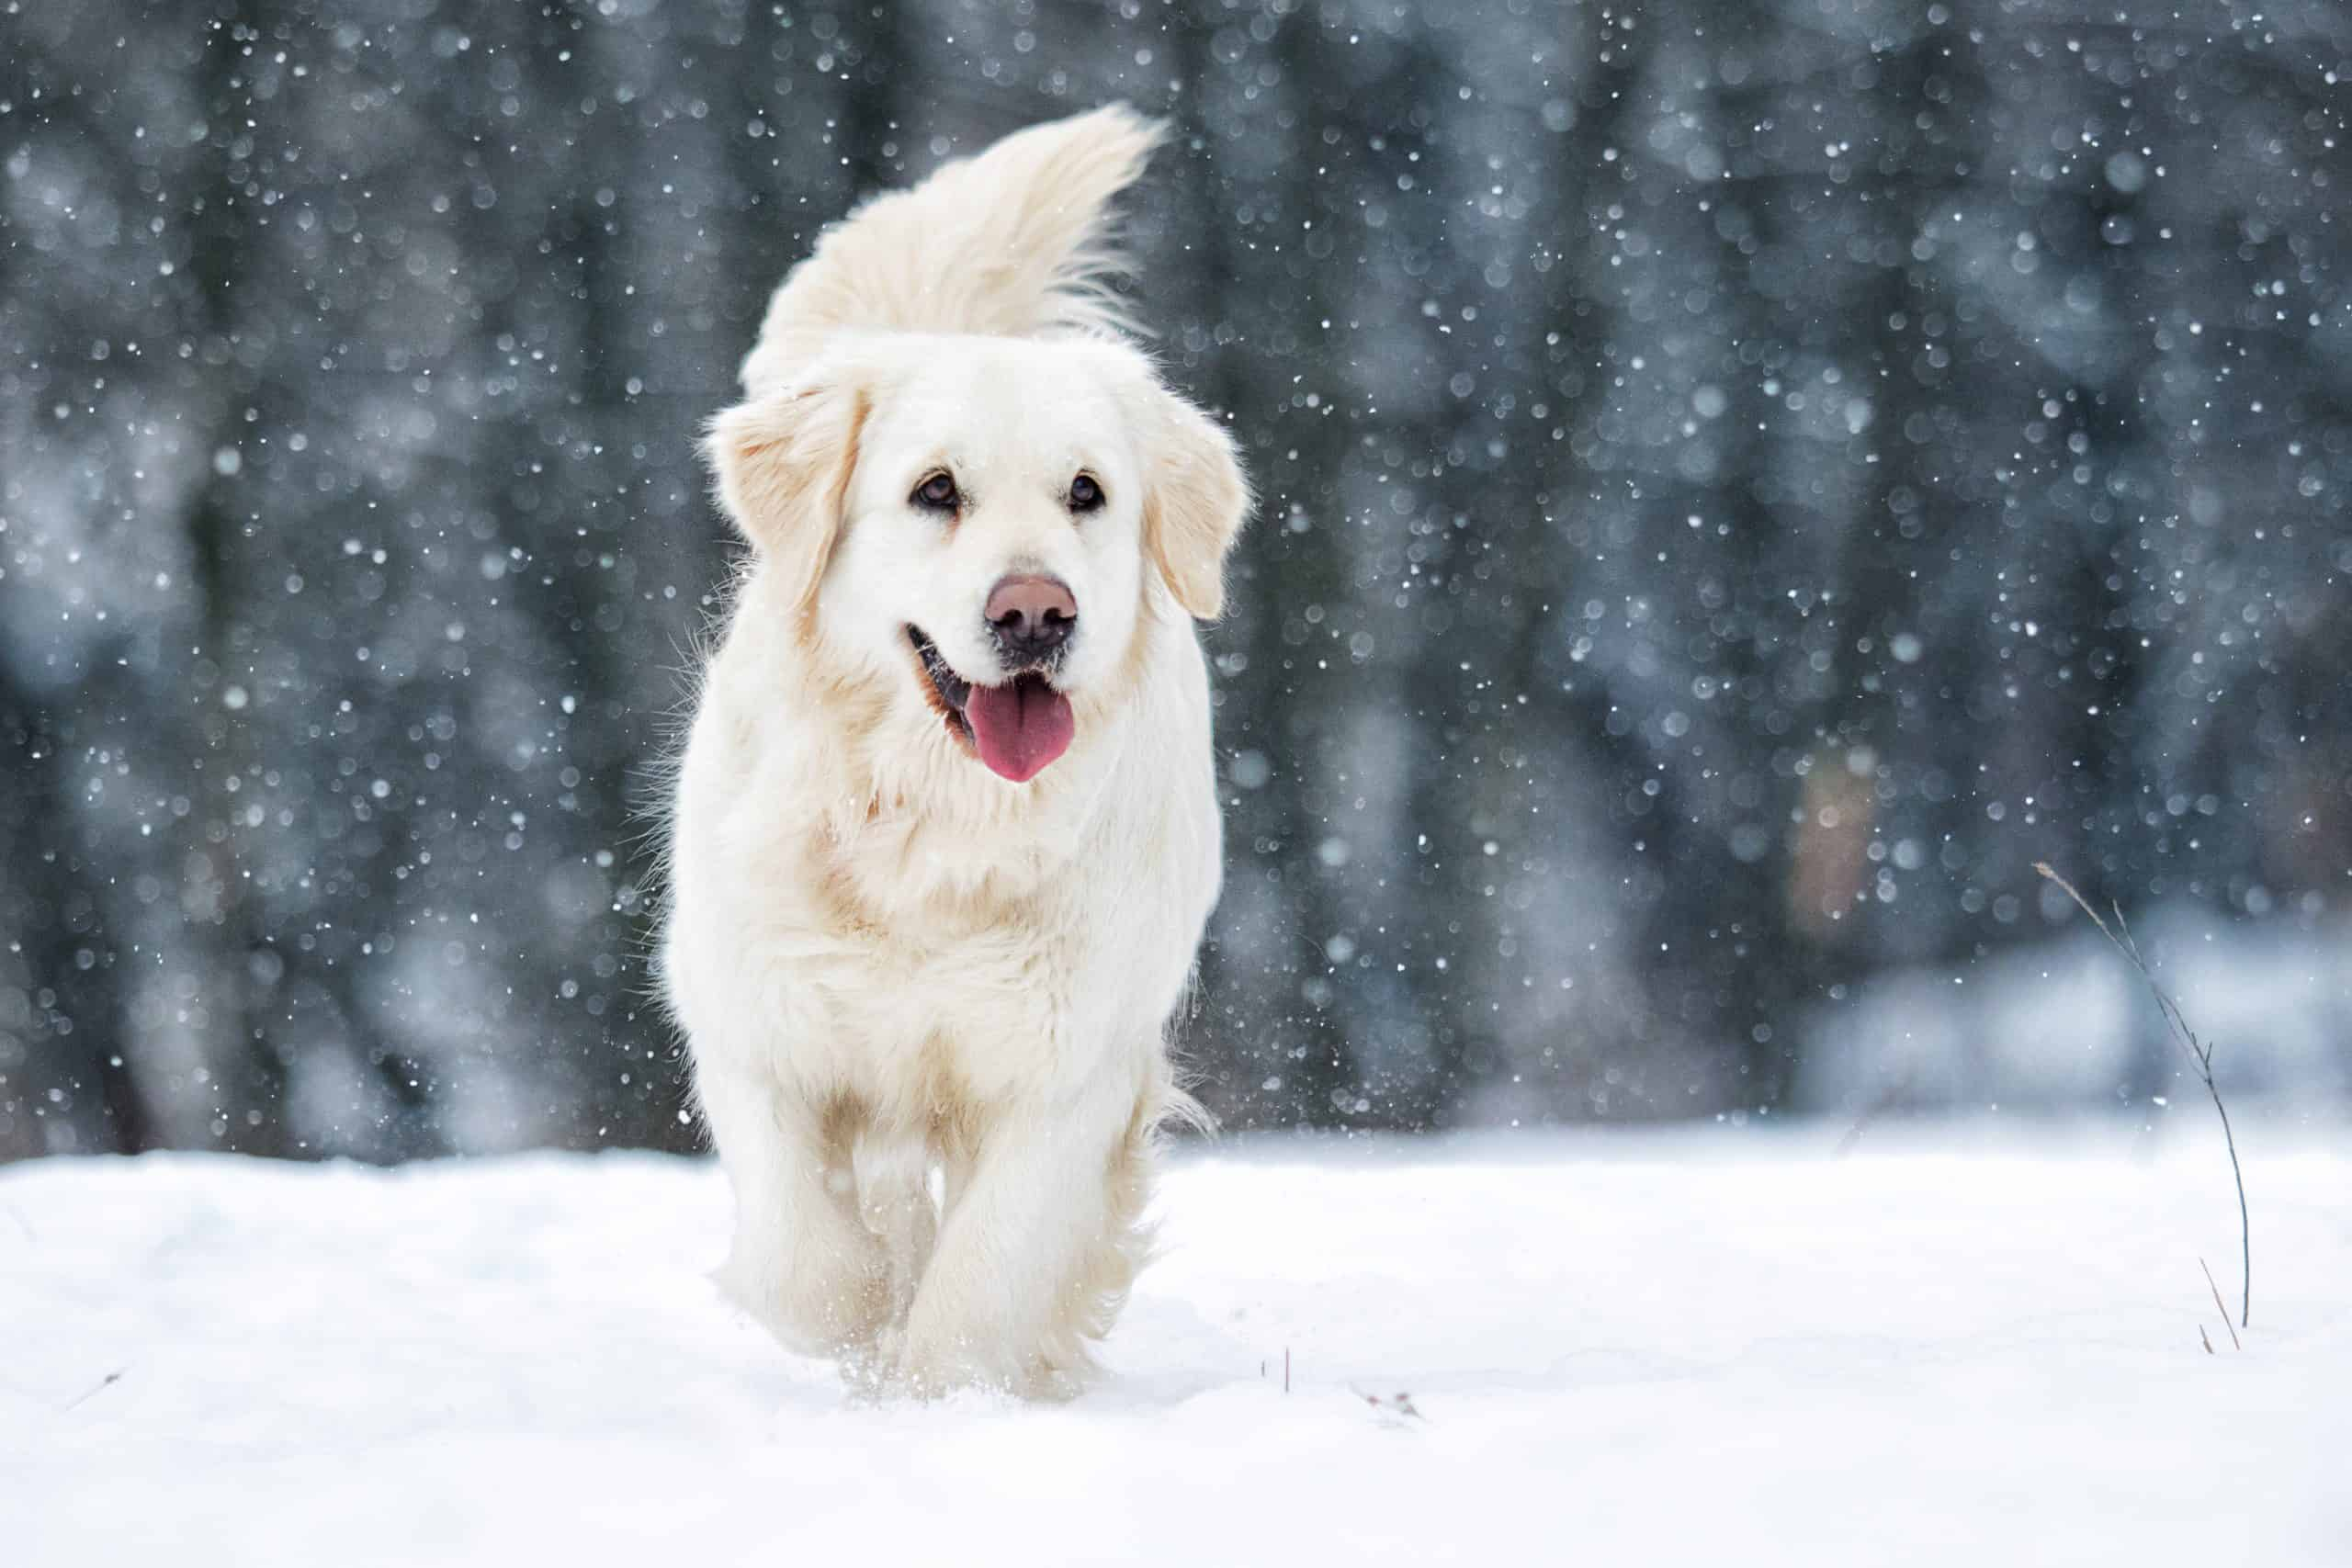 Golden retriever in the snow; how do you pick your name for your puppy?